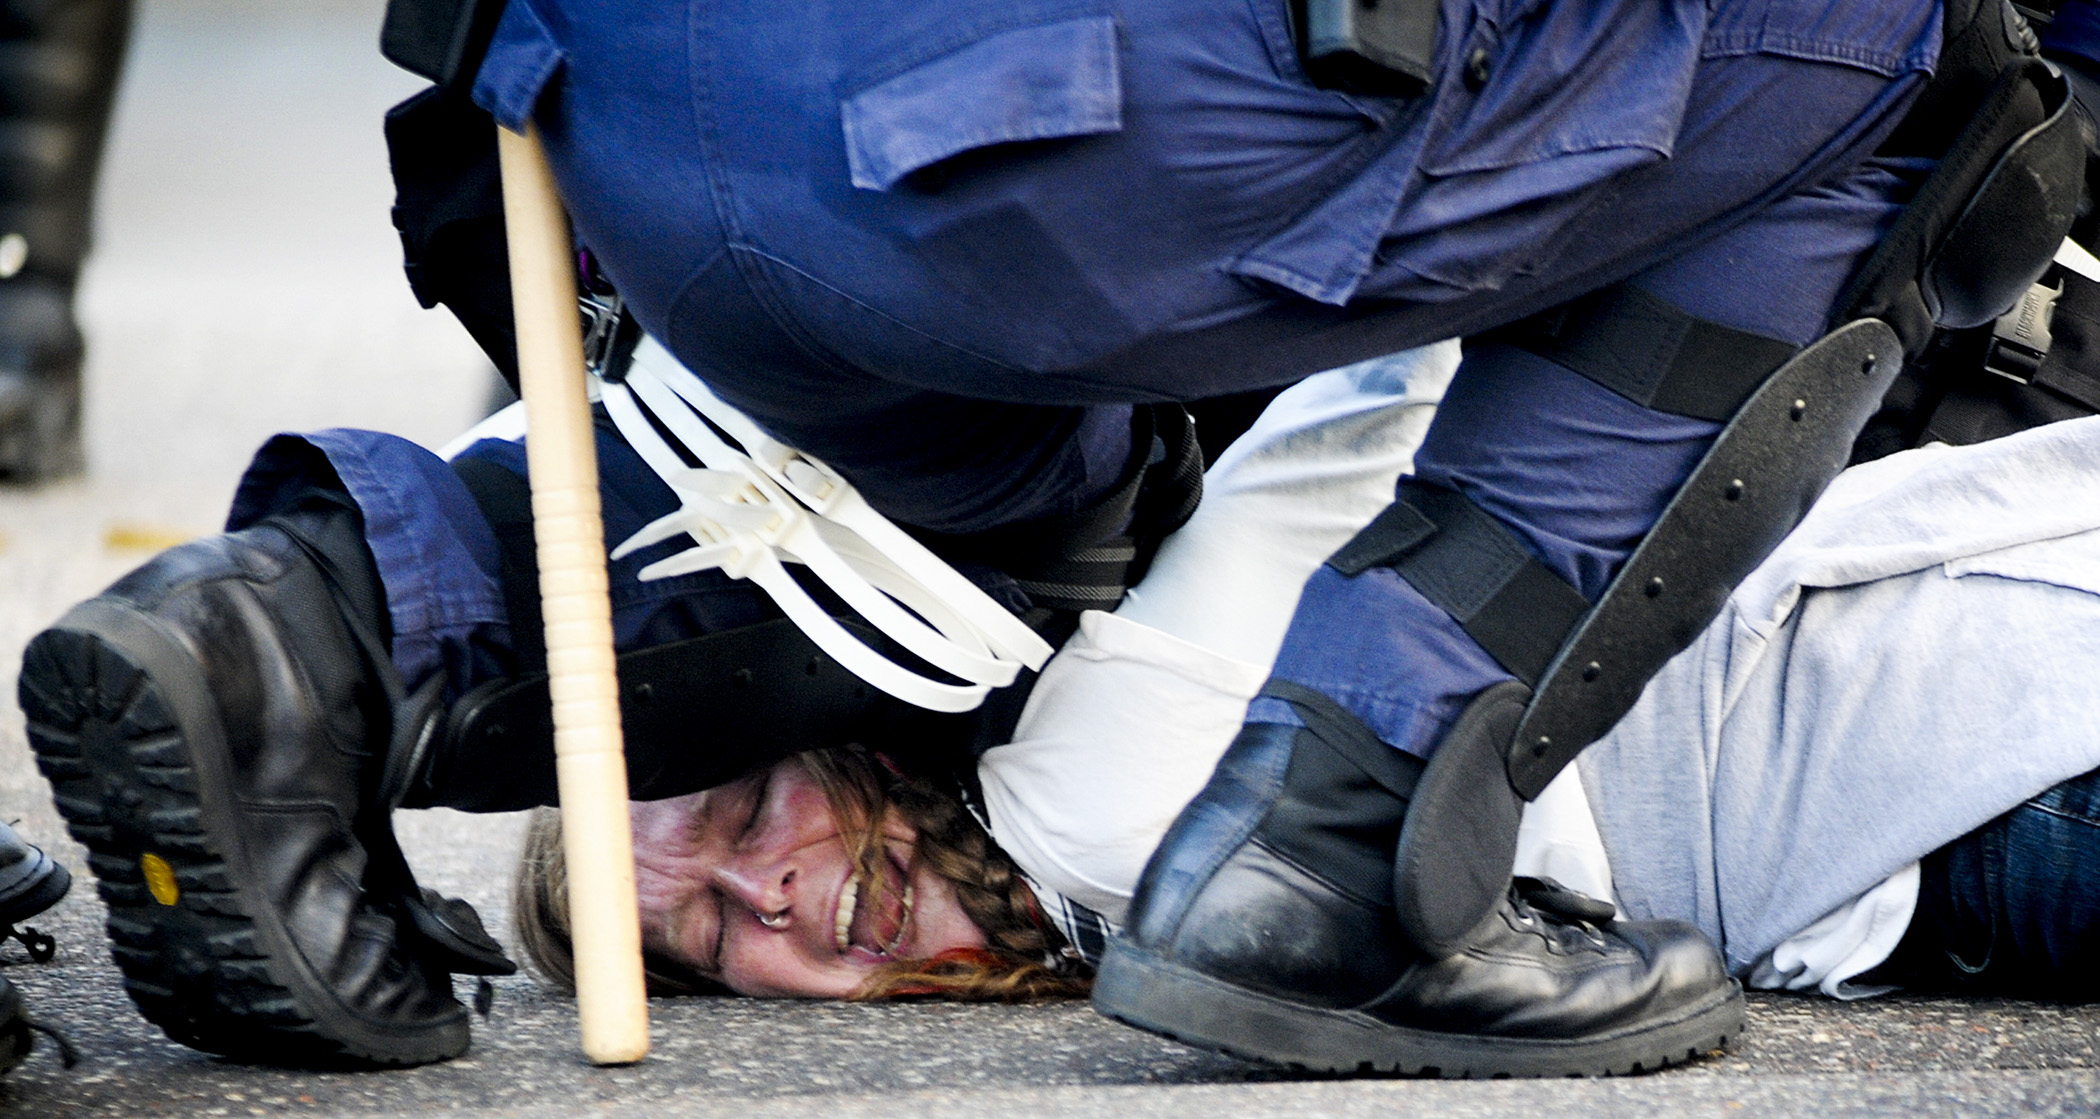 A protester is arrested during the Republican National Convention on September 4, 2008 in St. Paul, MN.